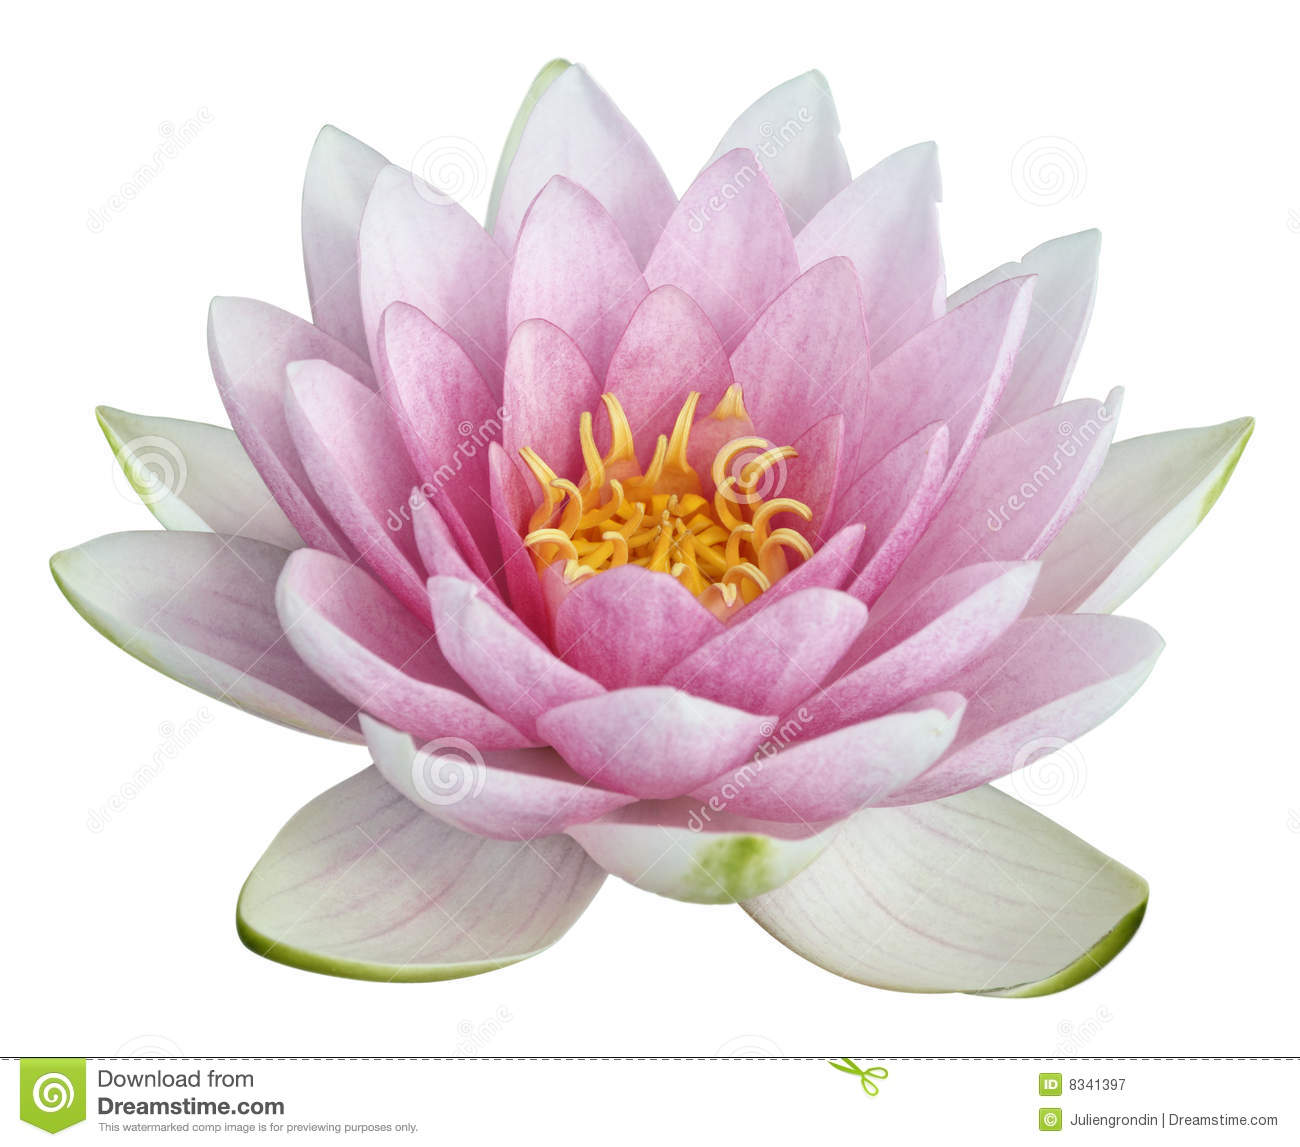 Lotus Flower Stock Photos, Images, & Pictures.